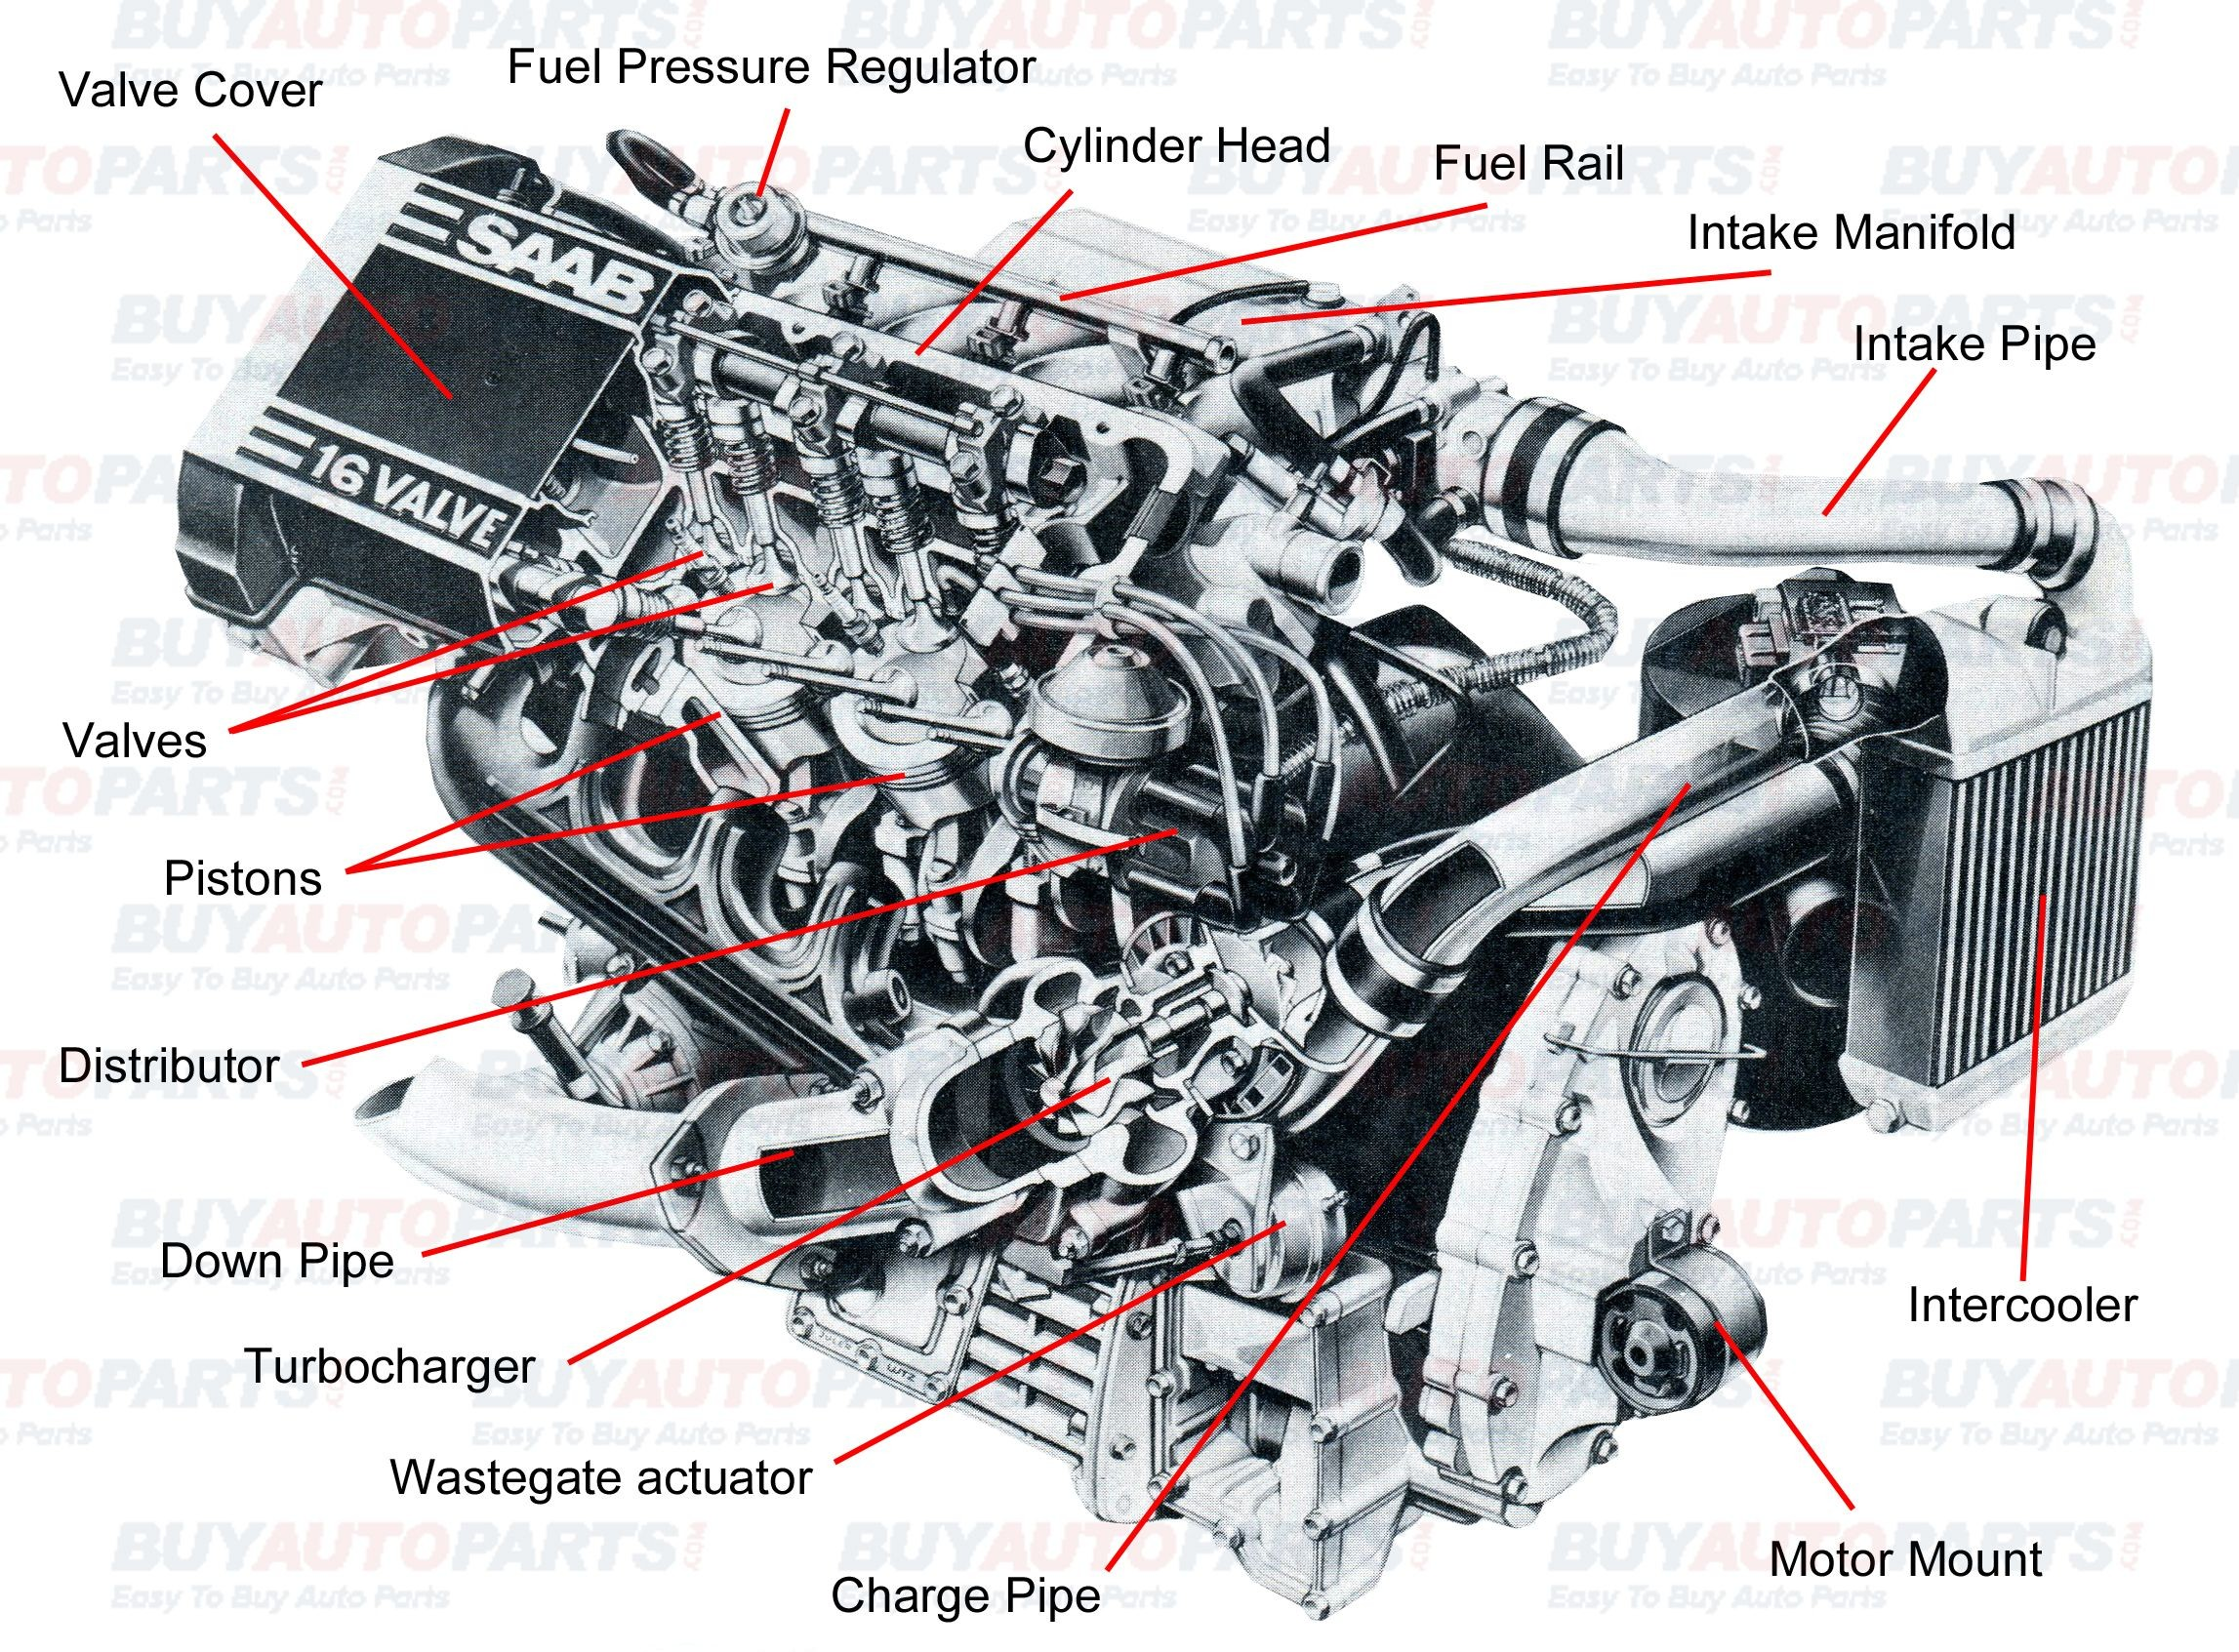 Diagram Of All Car Parts Pin by Jimmiejanet Testellamwfz On What Does An Engine with